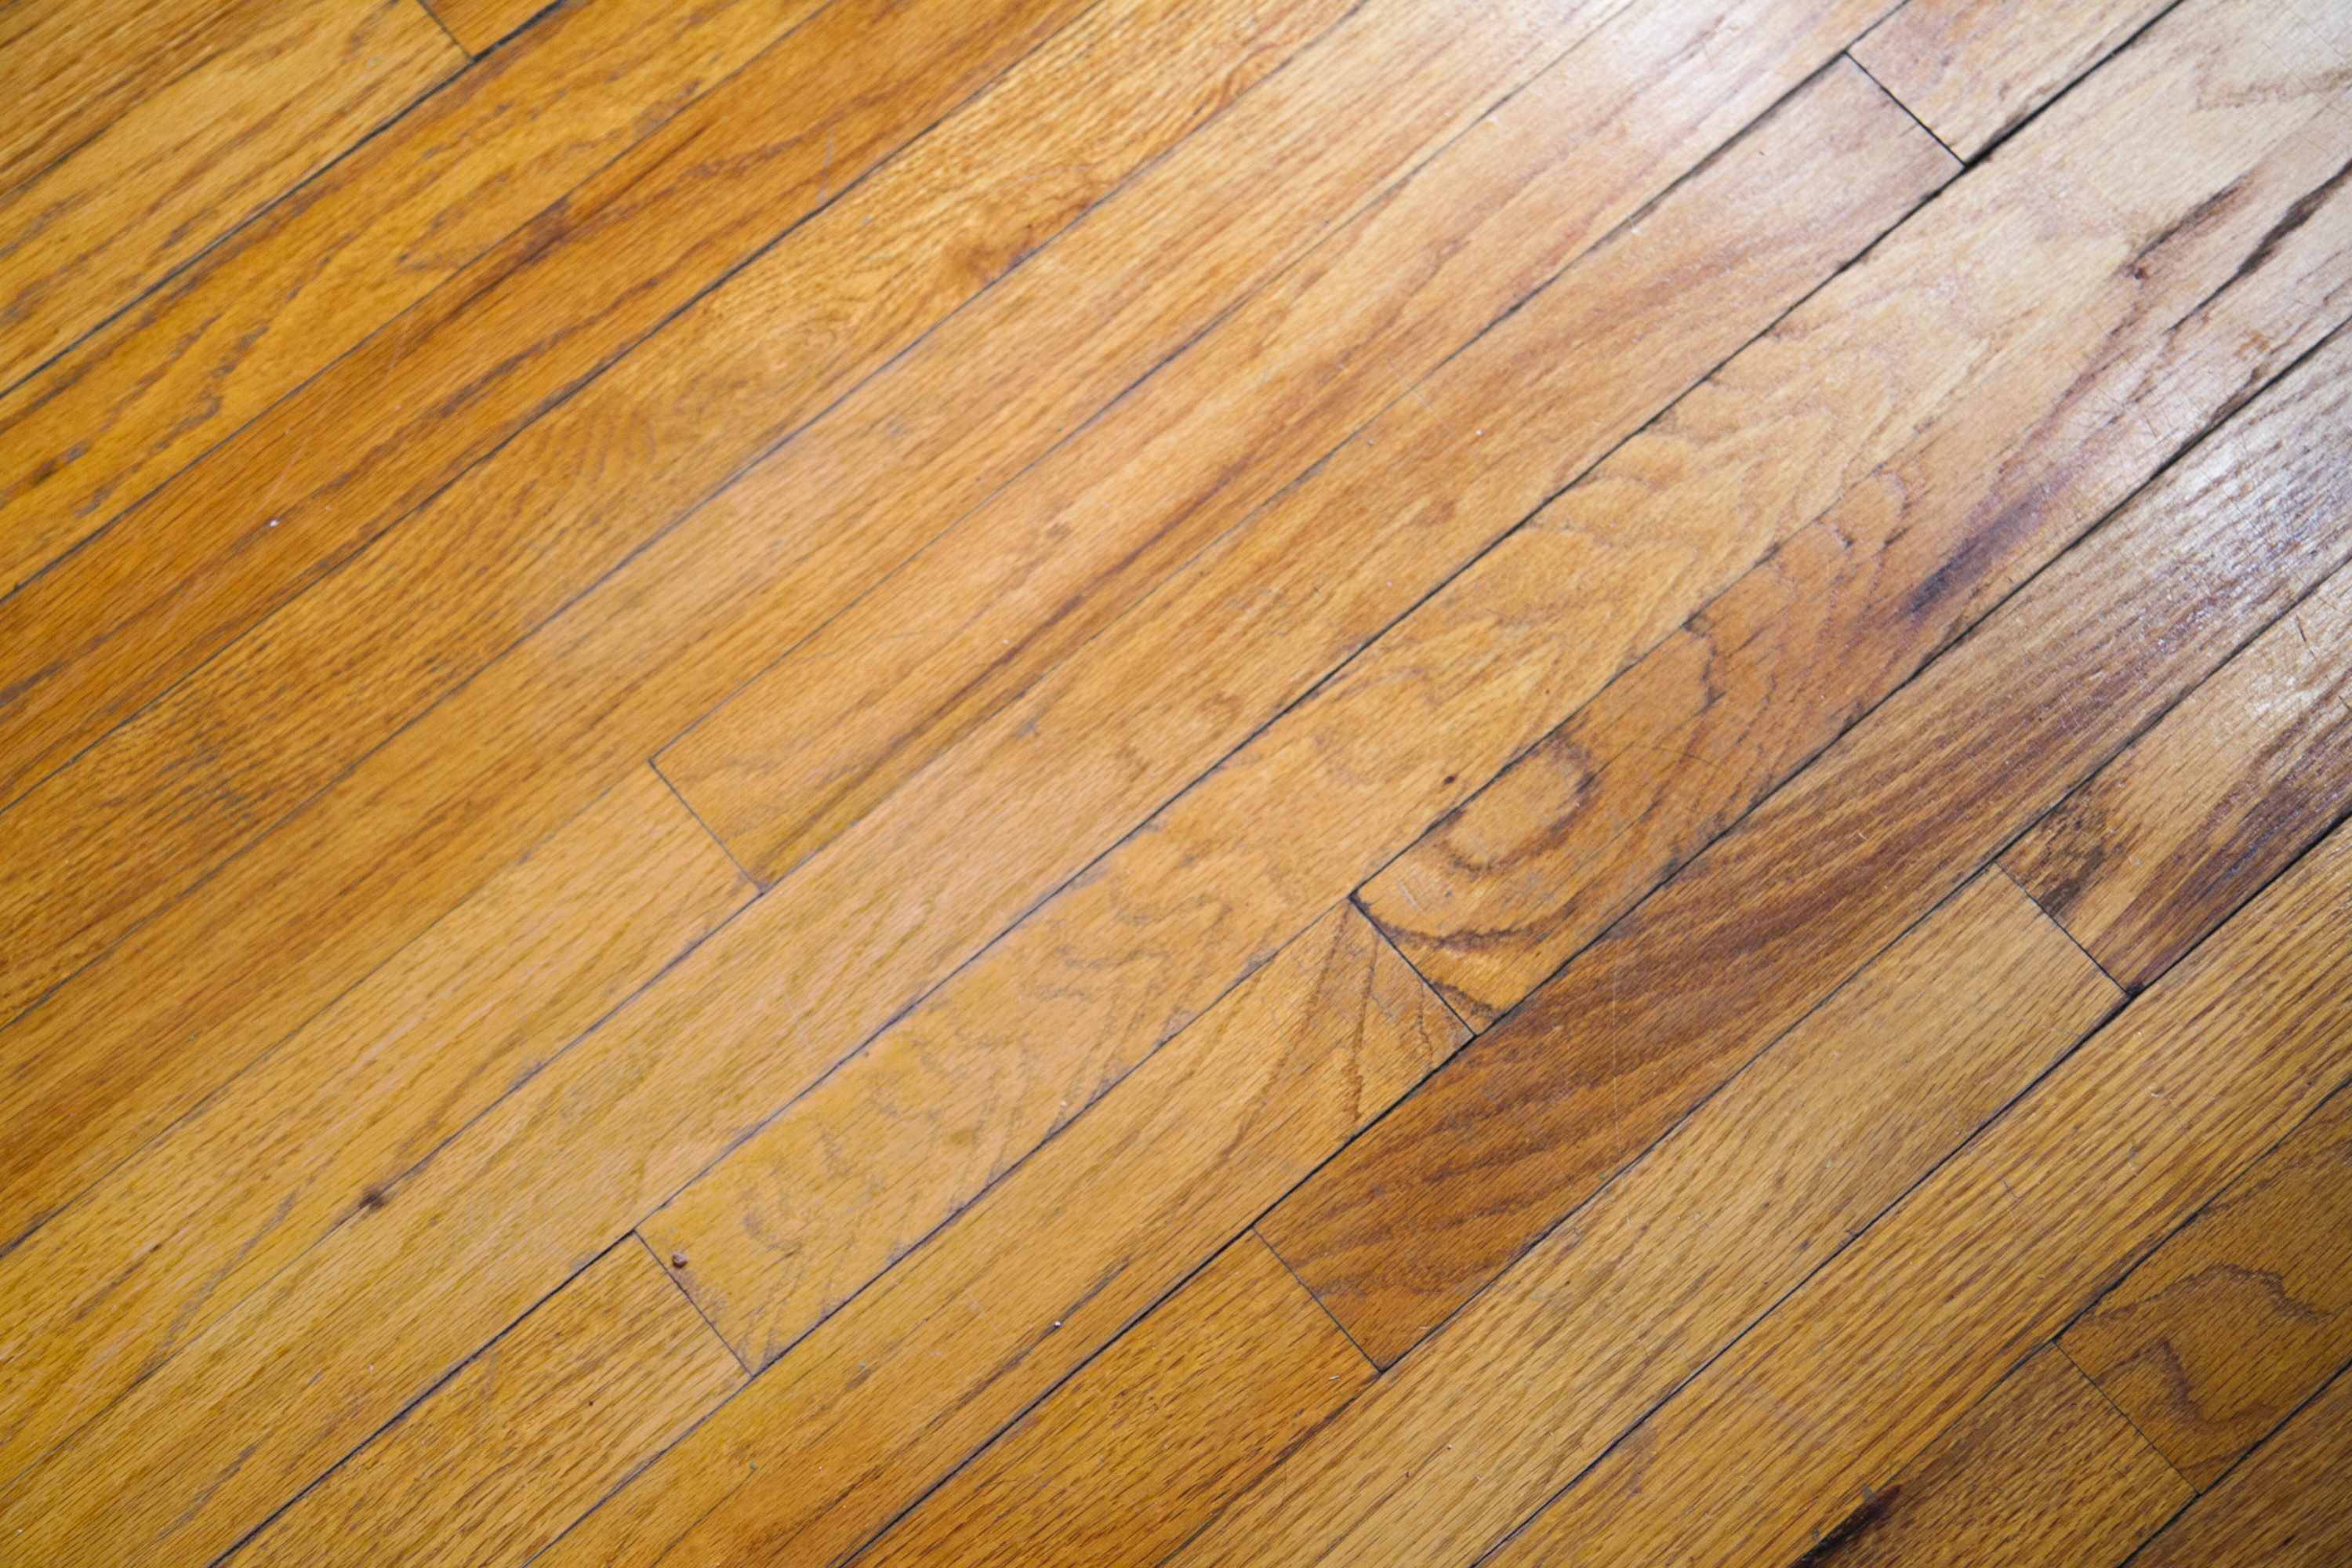 How To Get Up A Cloudy Haze On Hardwood Floors Hunker,Yellow Automotive Paint